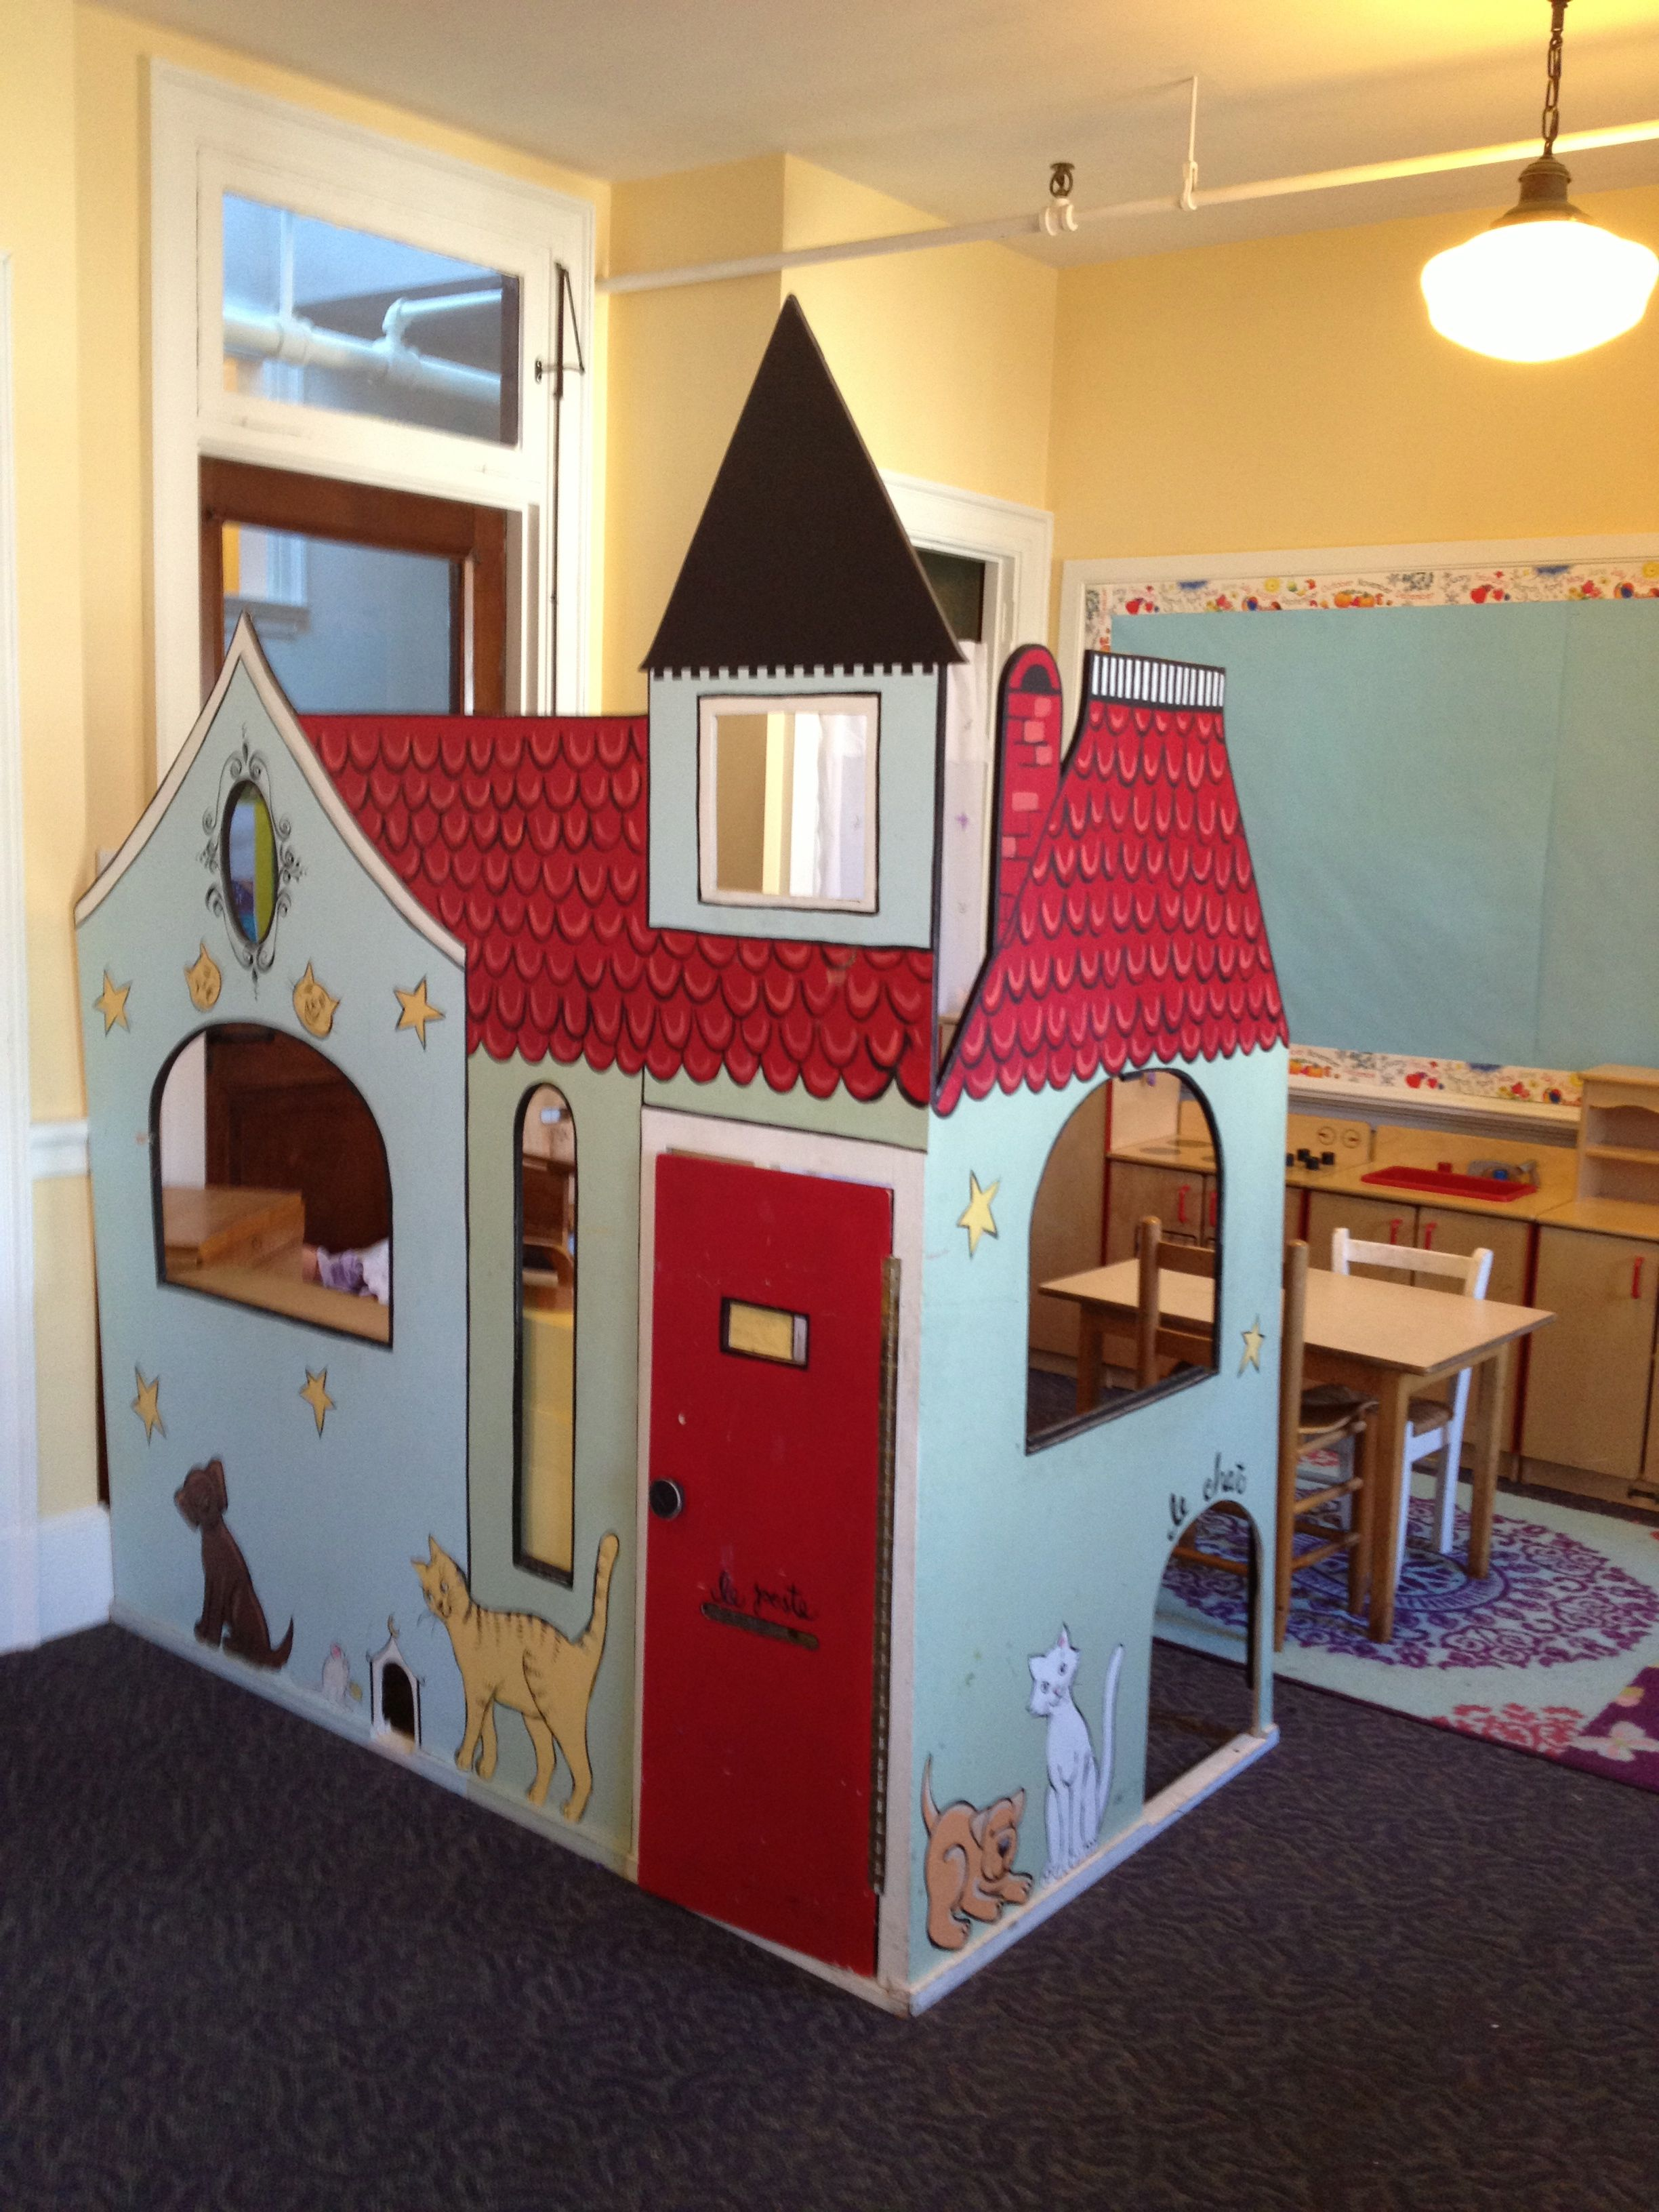 School playhouse onfindinghappy for School playhouse